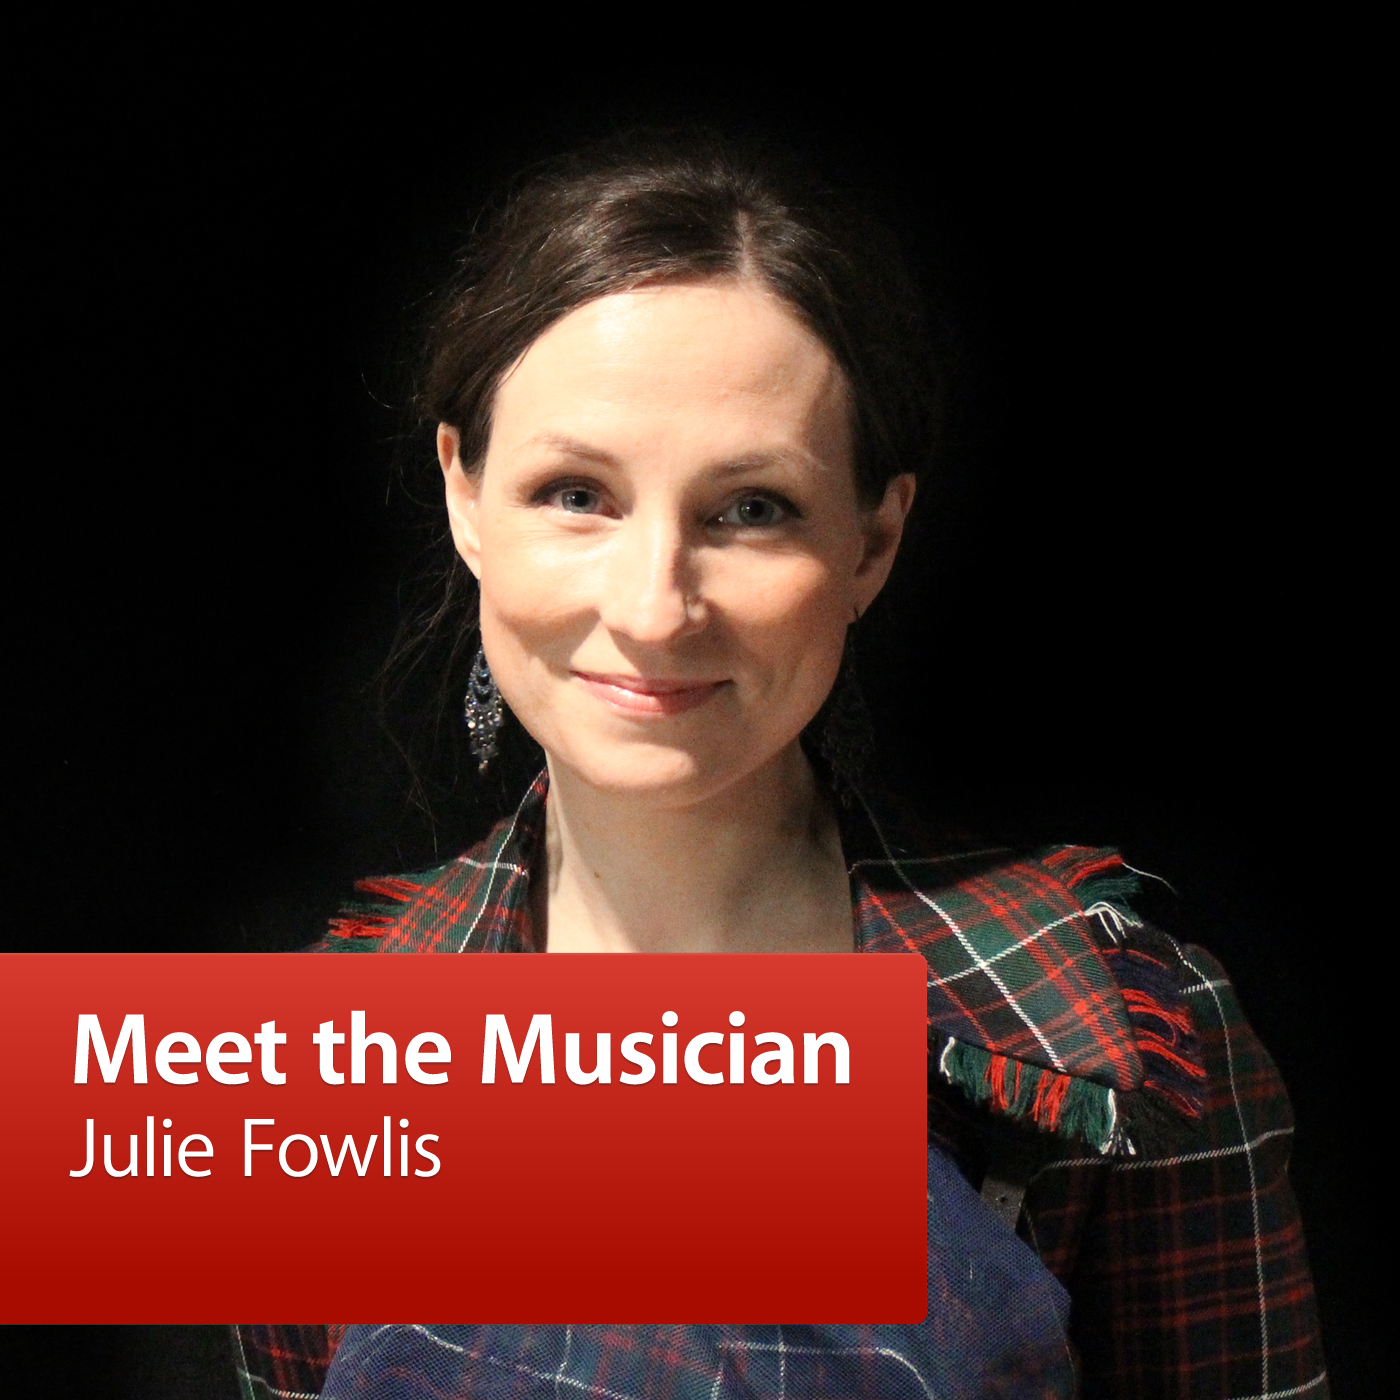 Julie Fowlis: Meet the Musician